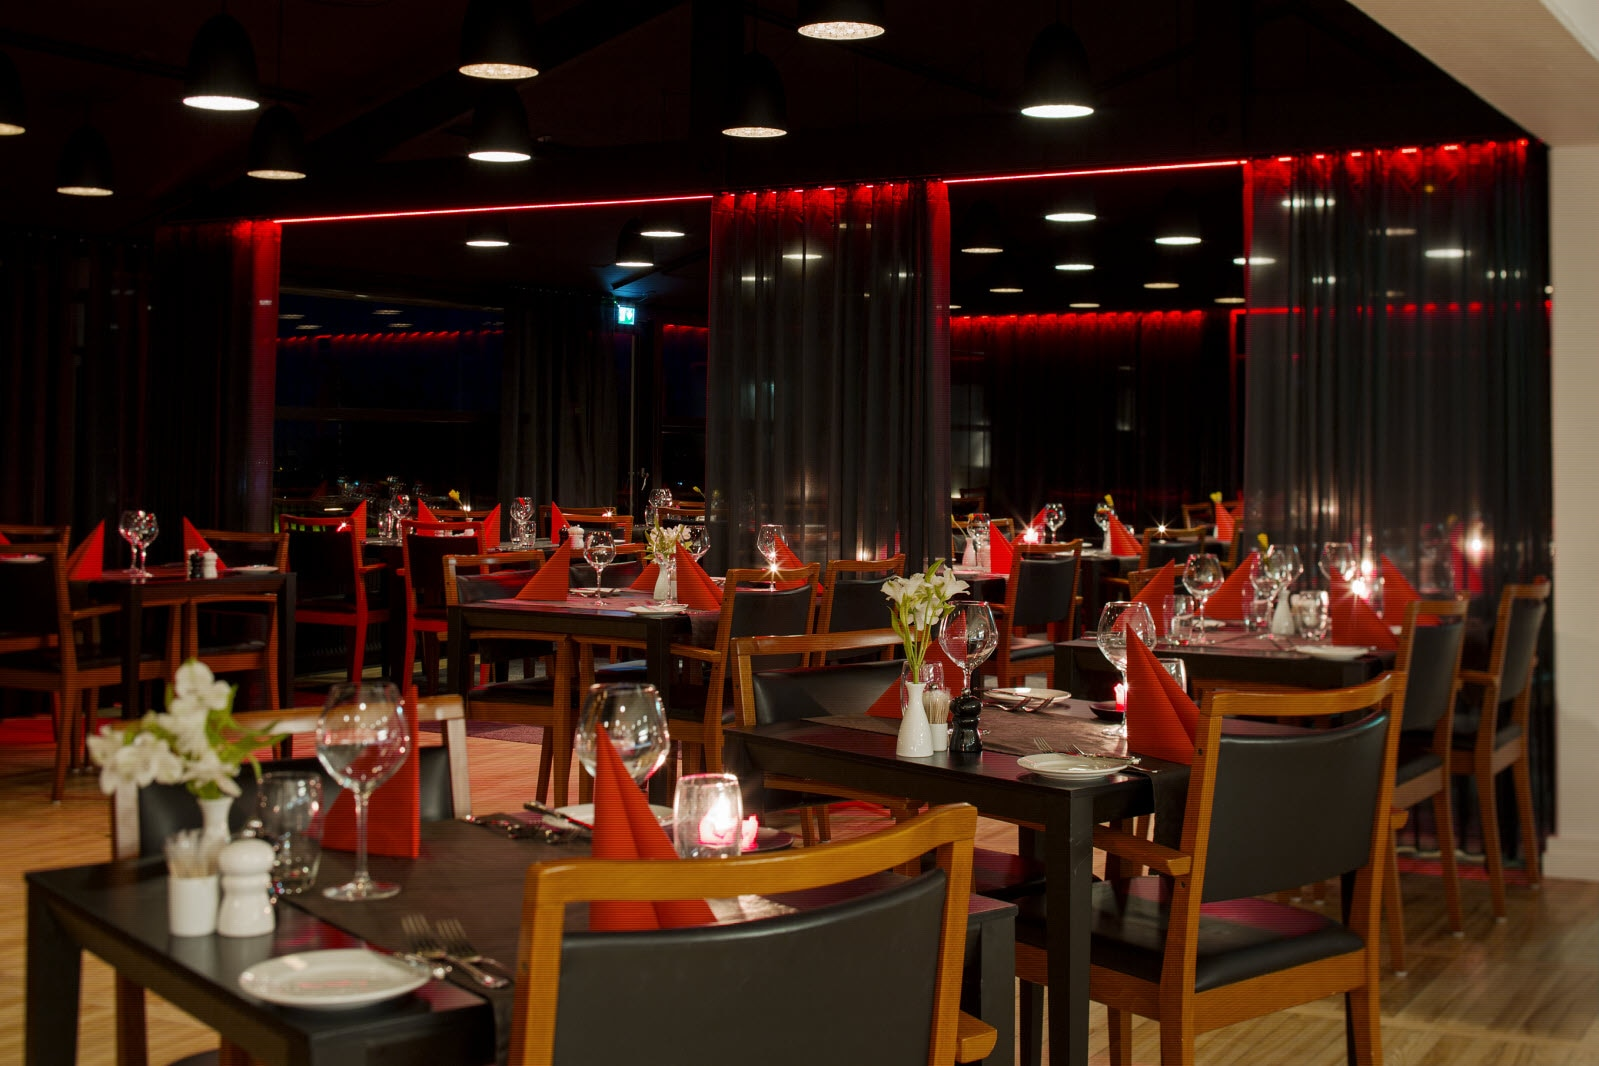 Scandic Aalborg, A la carte, restaurant, night time, close up